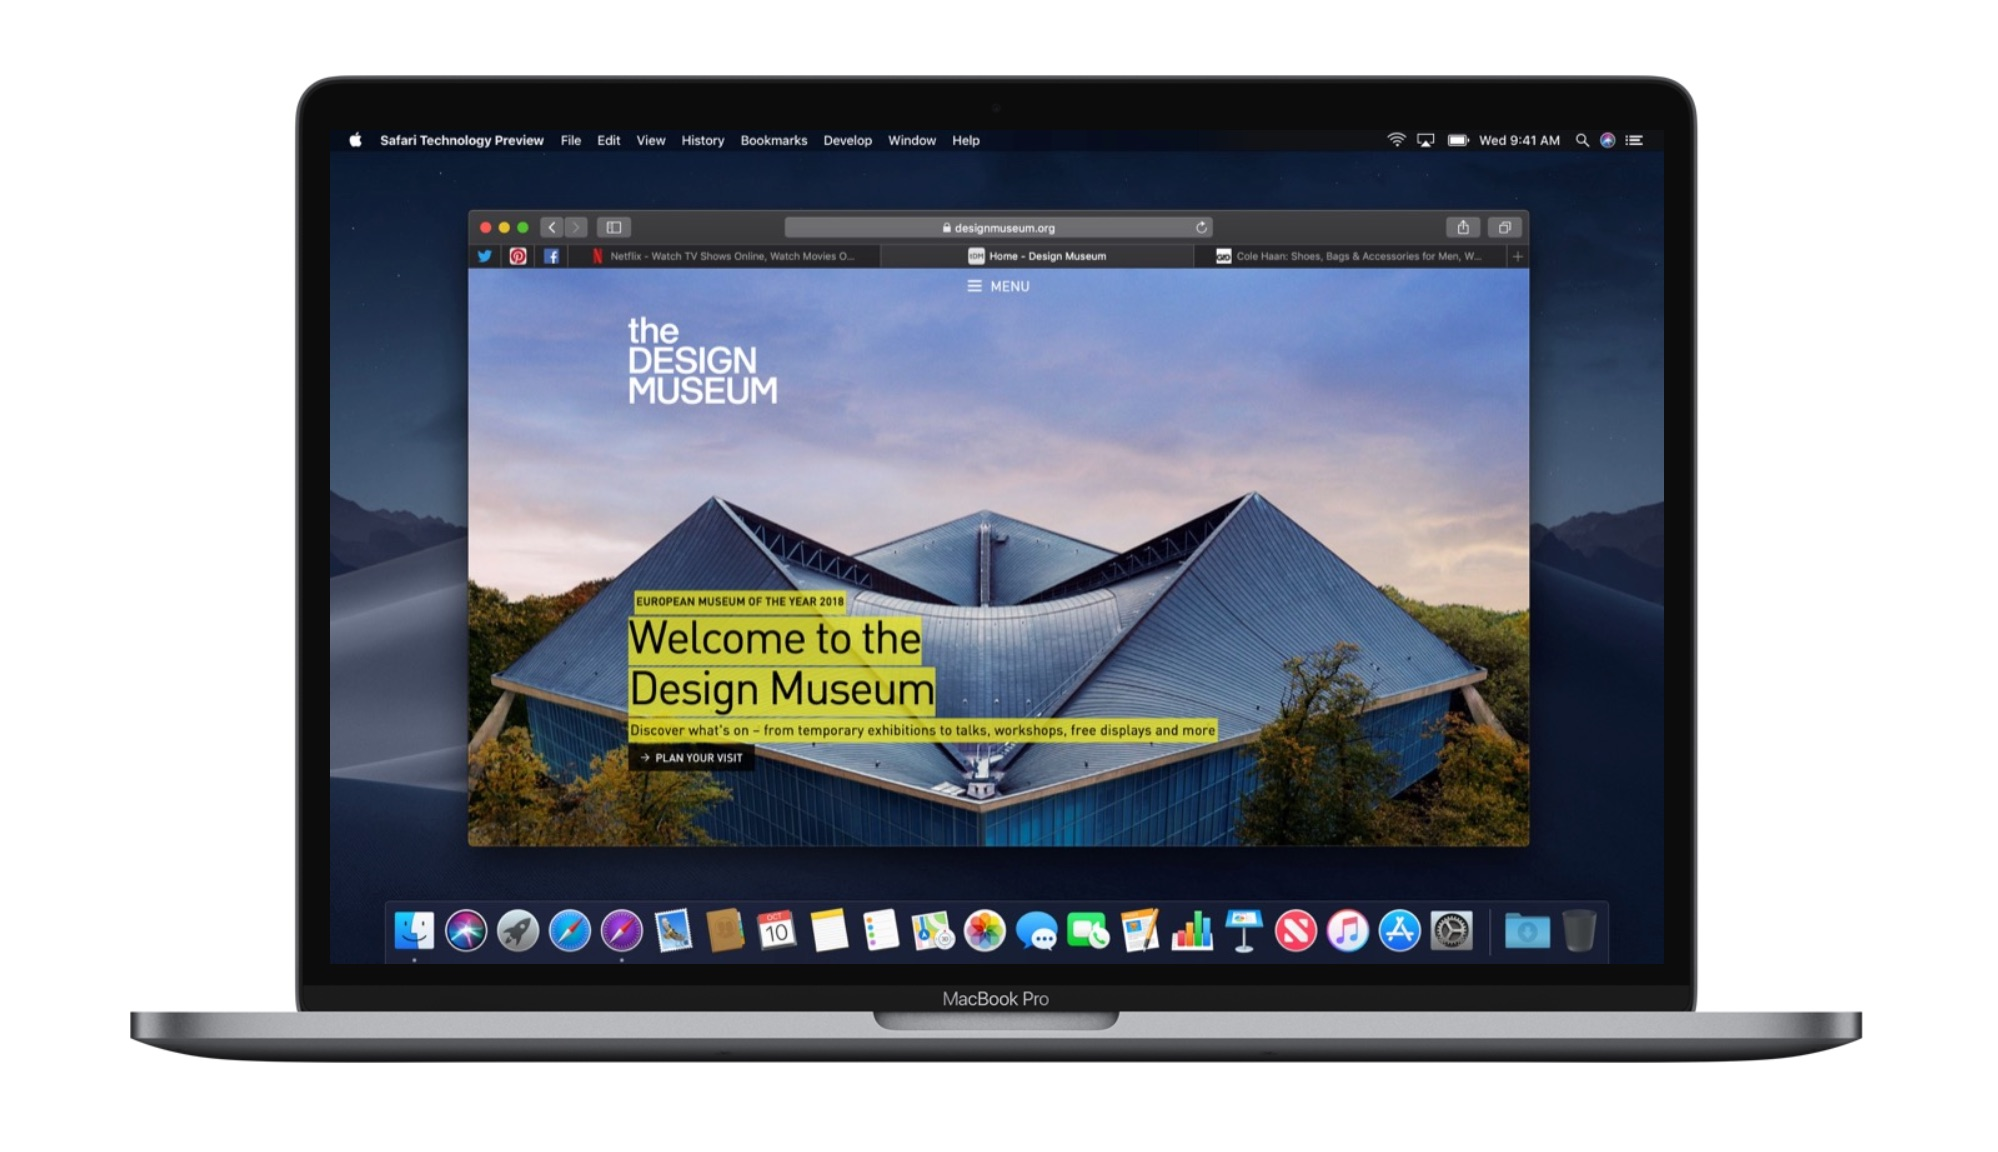 Safari Technology Preview 107 Offers The Usual Bug Fixes and Performance Improvements - RapidAPI